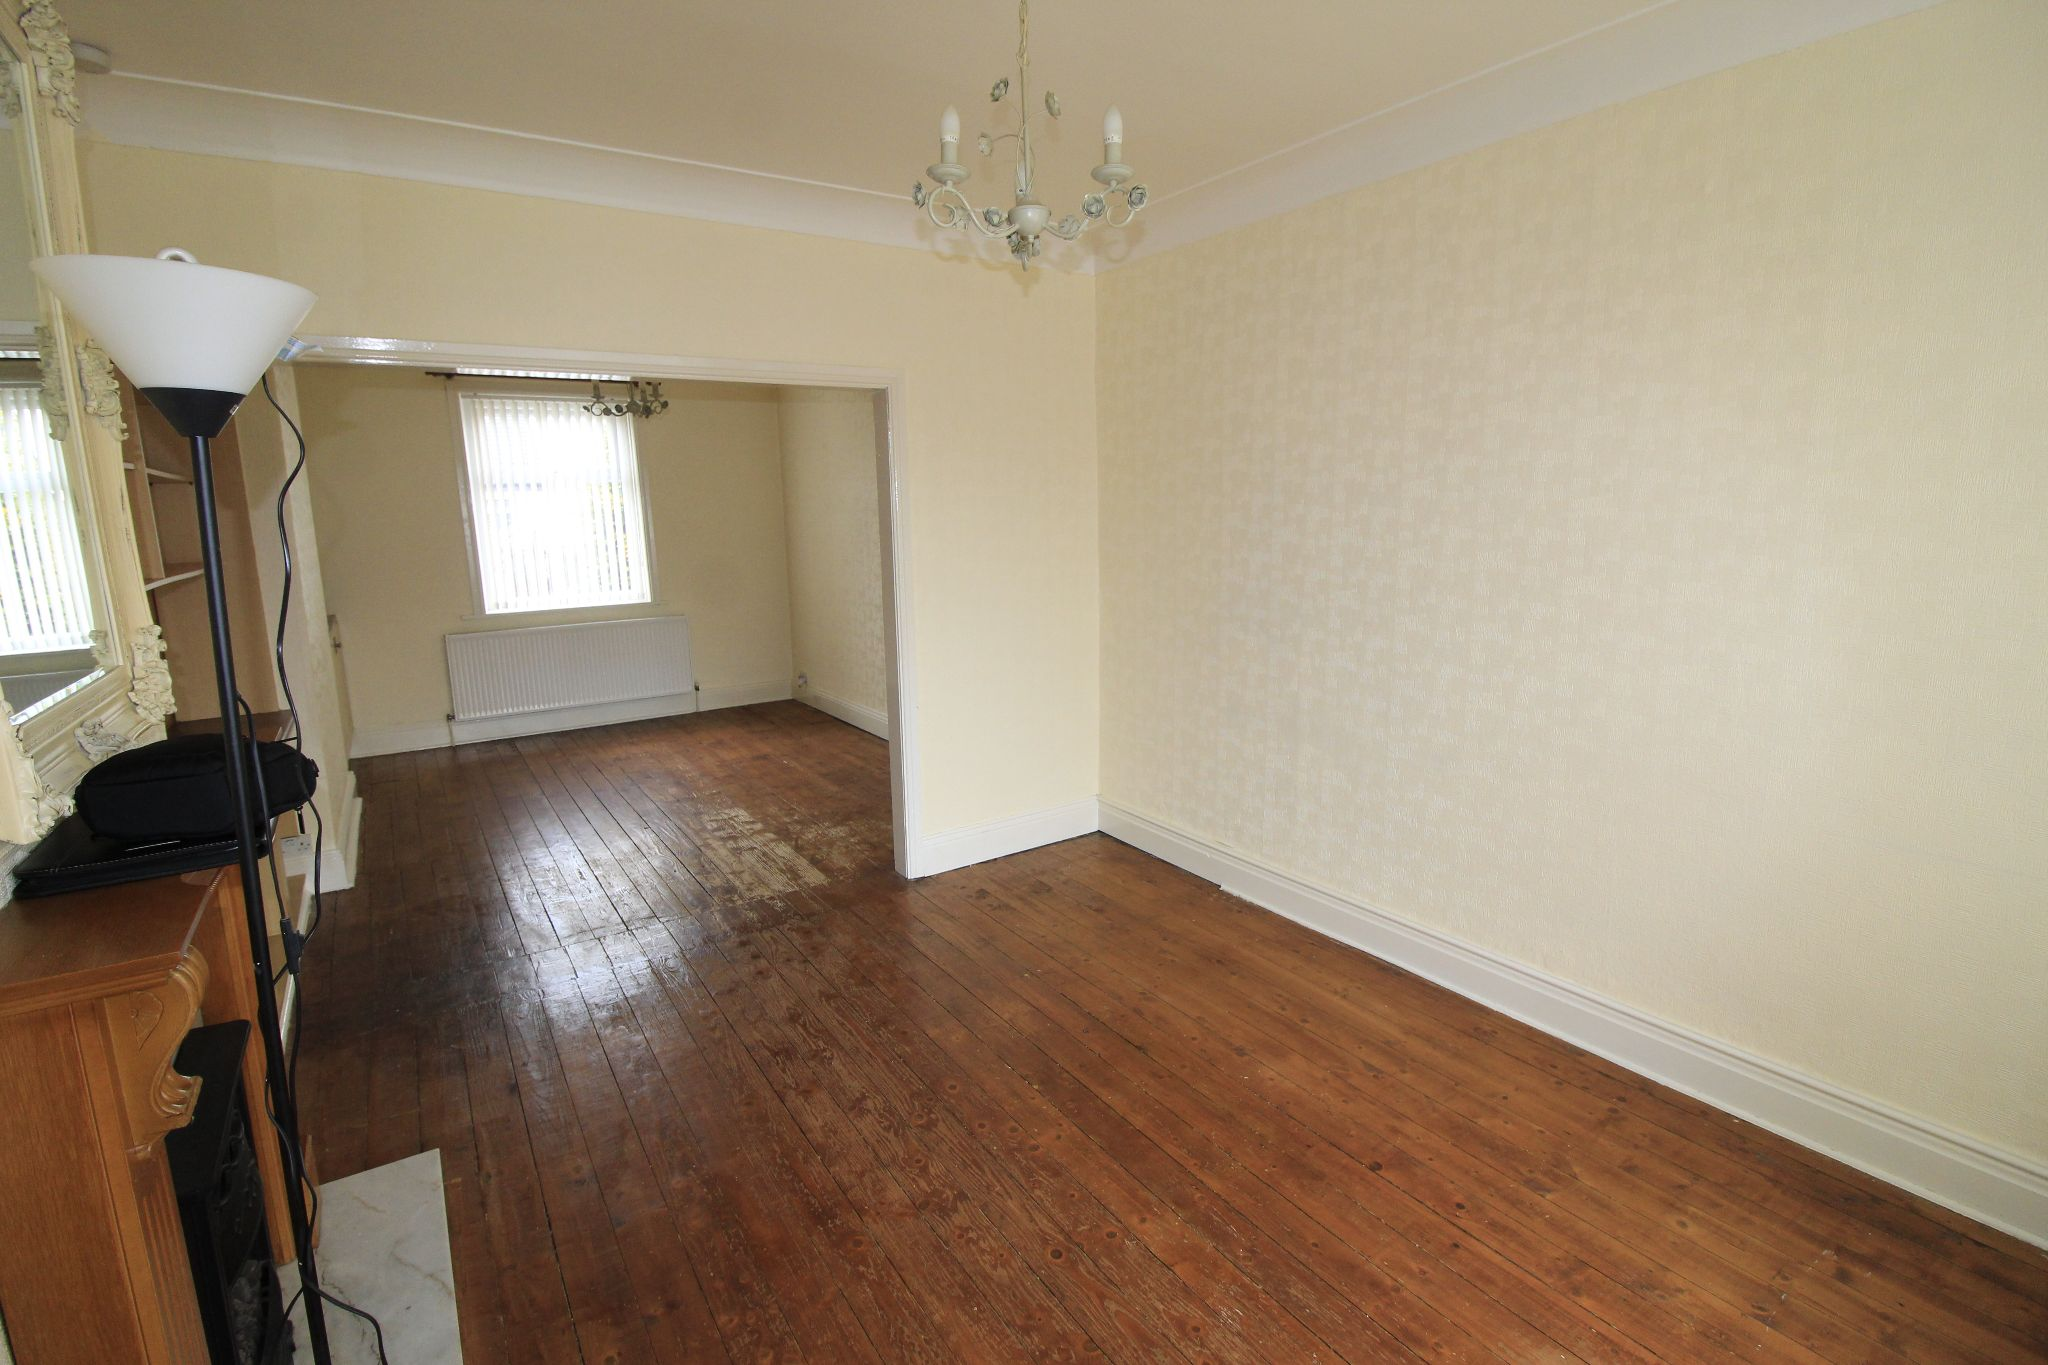 3 bedroom end terraced house Let in Bradford - Lounge and dining area